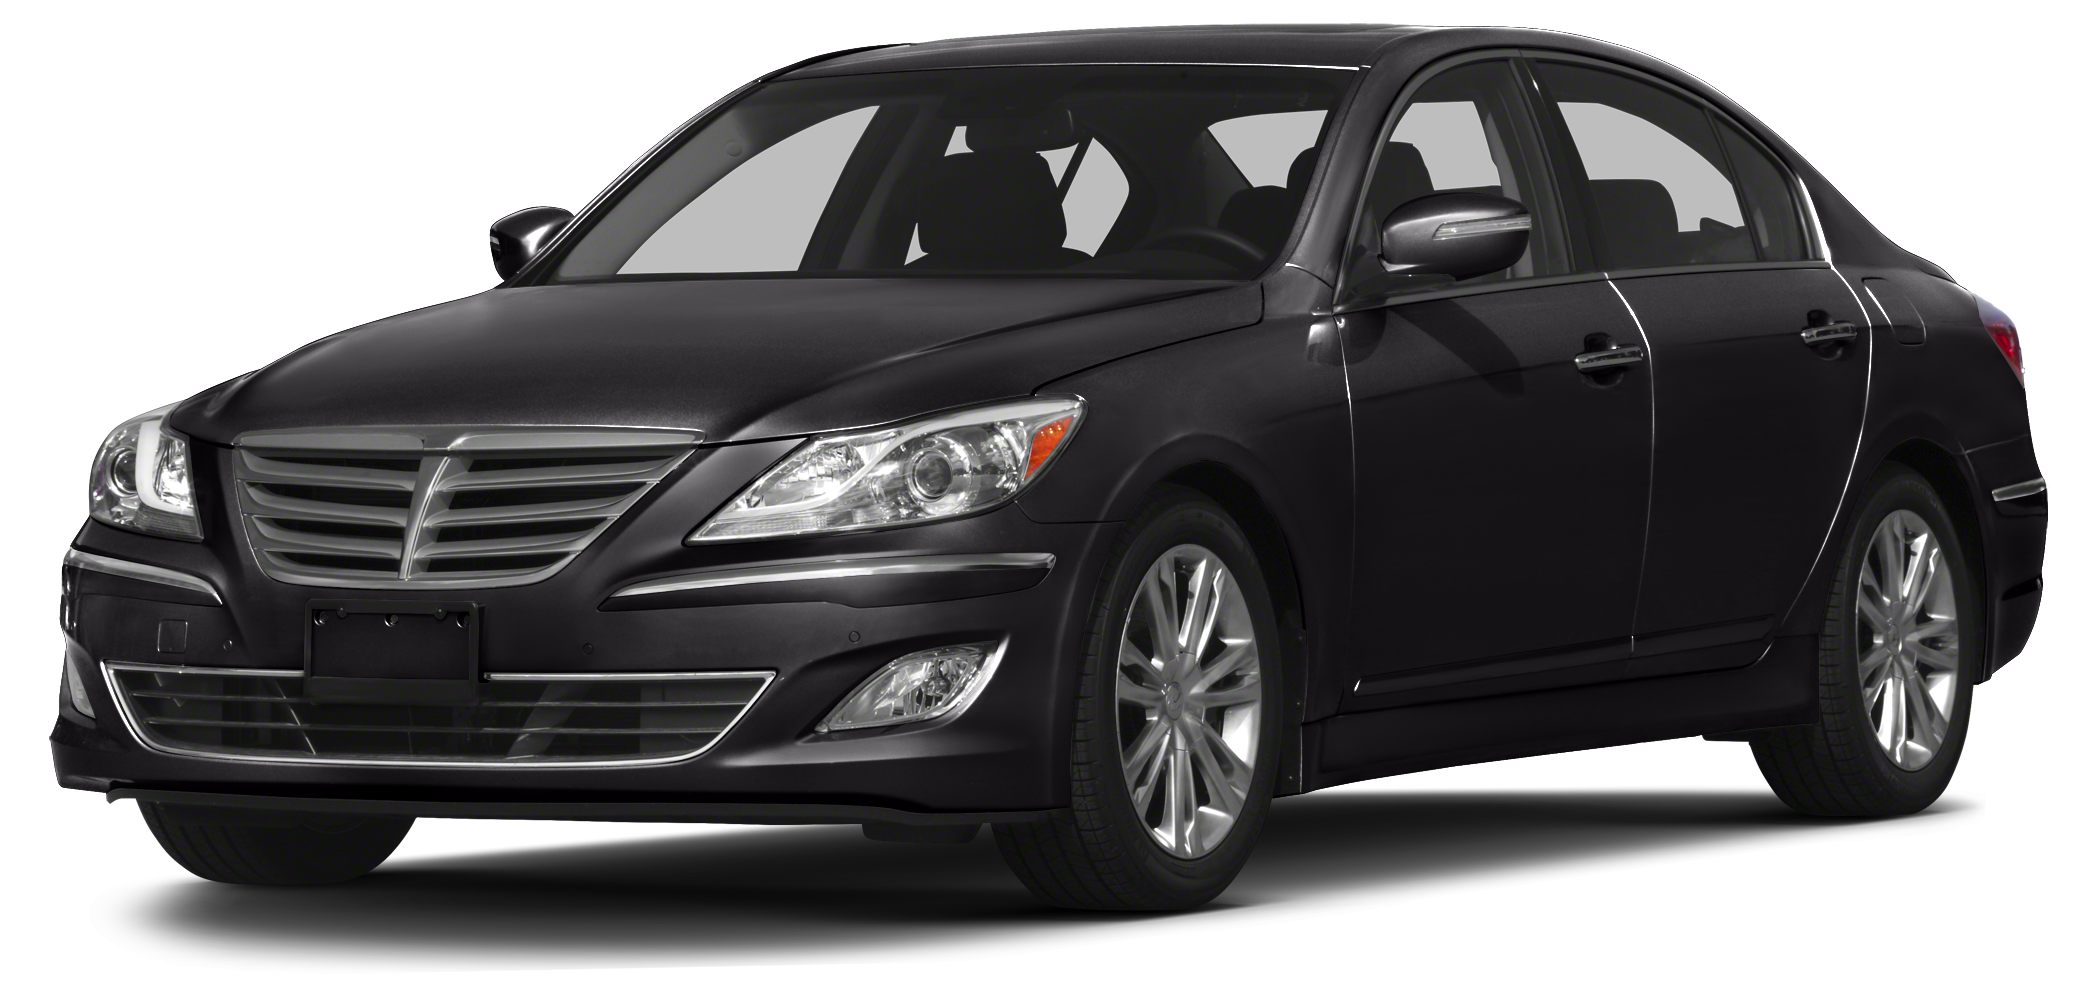 2013 Hyundai Genesis 38 HYUNDAI CERTIFIED - TECH  PREMIUM-PKG -NAVIGATION-MOONROOF- Just 14k mil